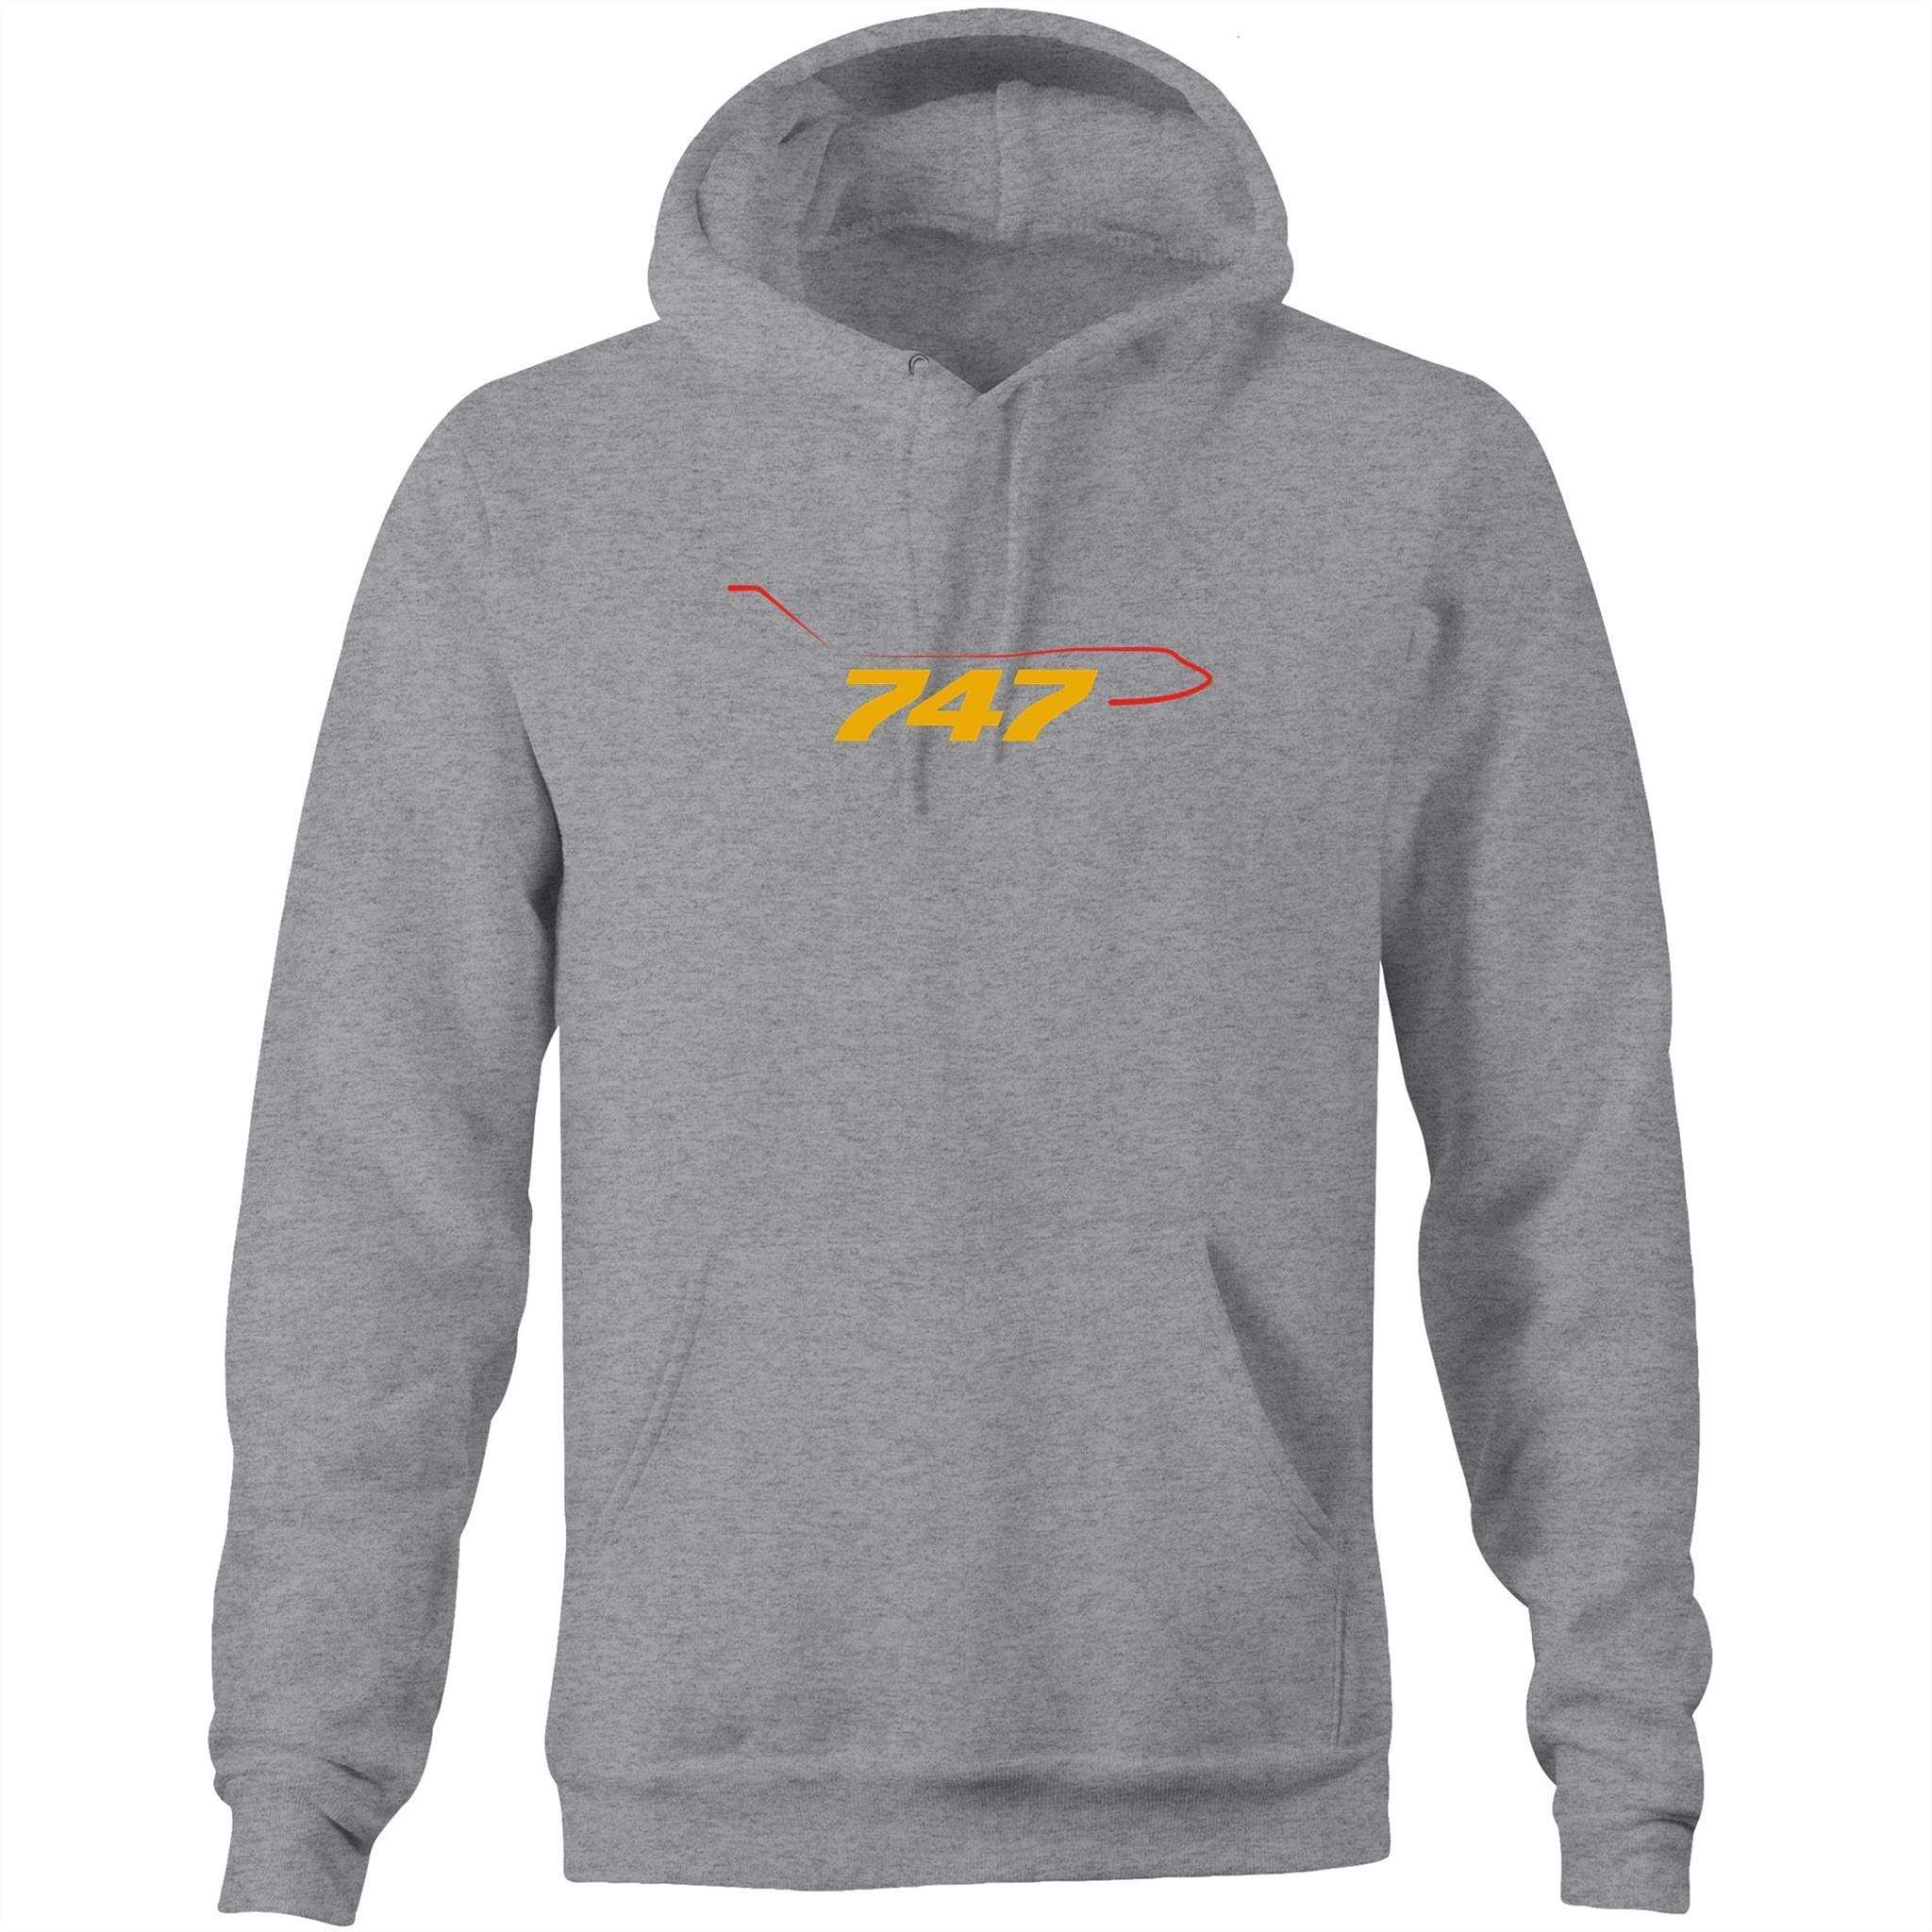 The 747 -  Hoodie - Just Print Co